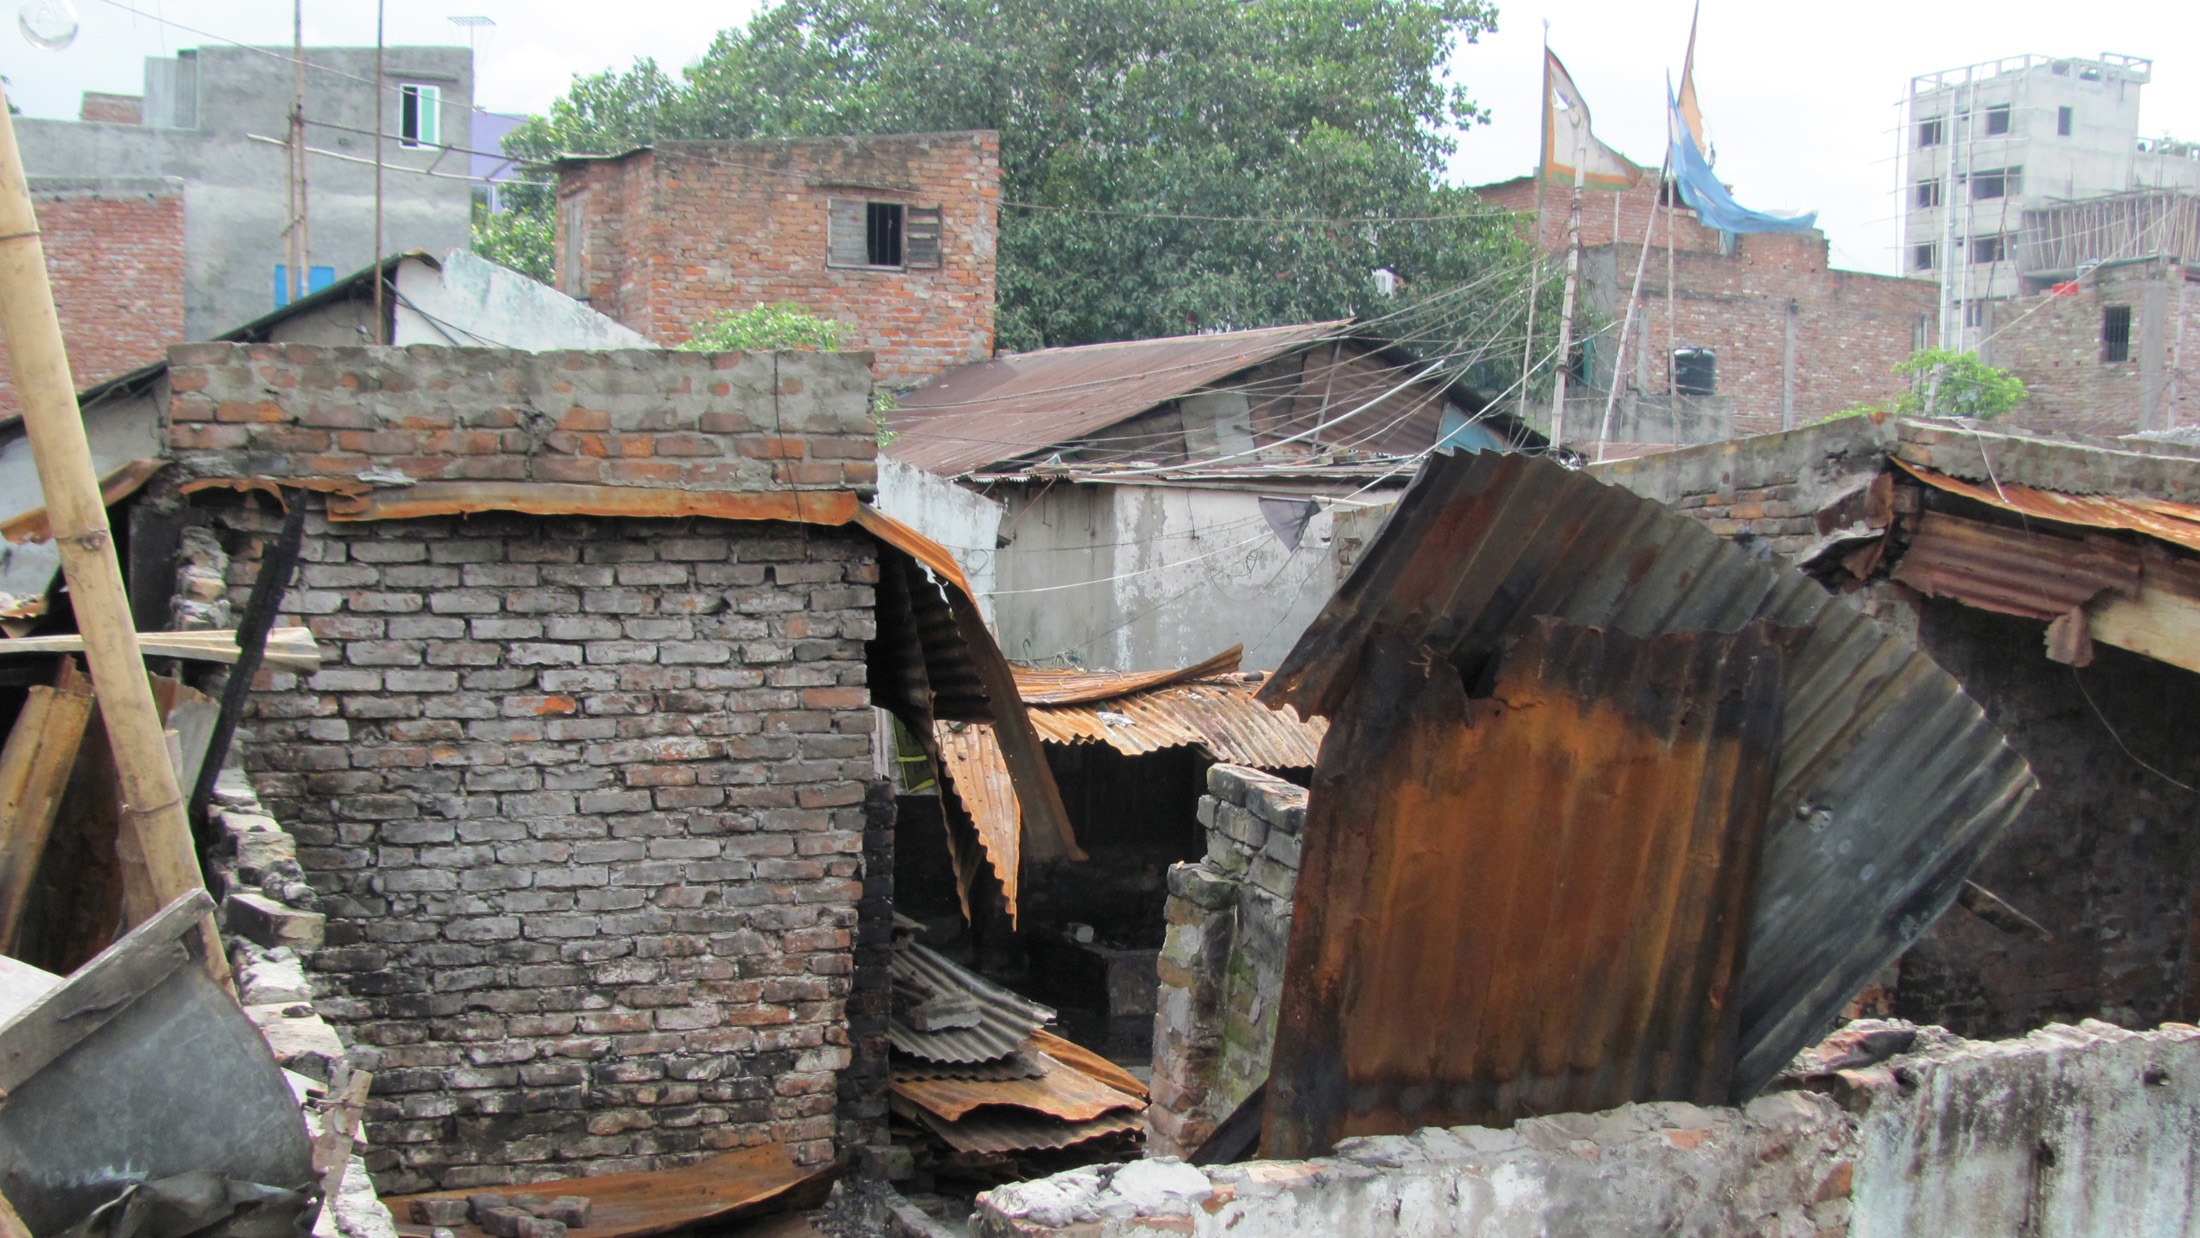 Dozens of homes were torched in June 2014 clashes between Bihari residents and Bengalis that left 10 dead. Biharis, despite some legal progress, live in tenuous arrangements and amid intense stigma in Bangladesh.